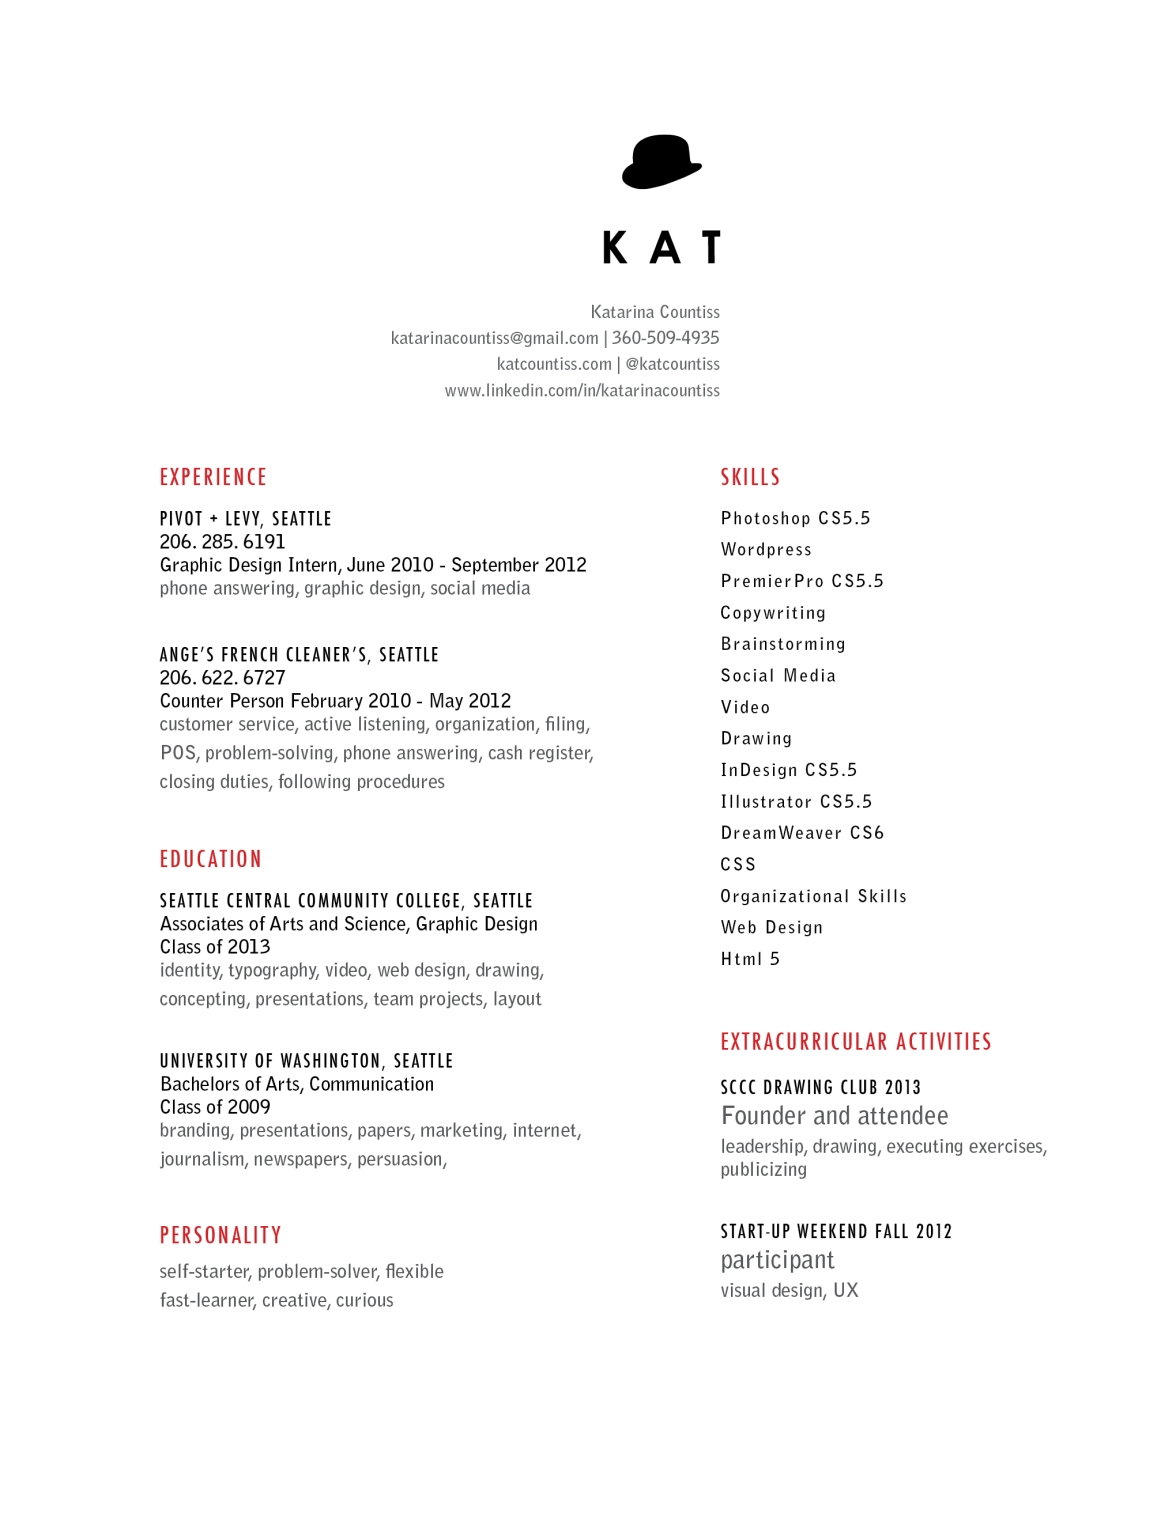 katarina_countiss_resume2